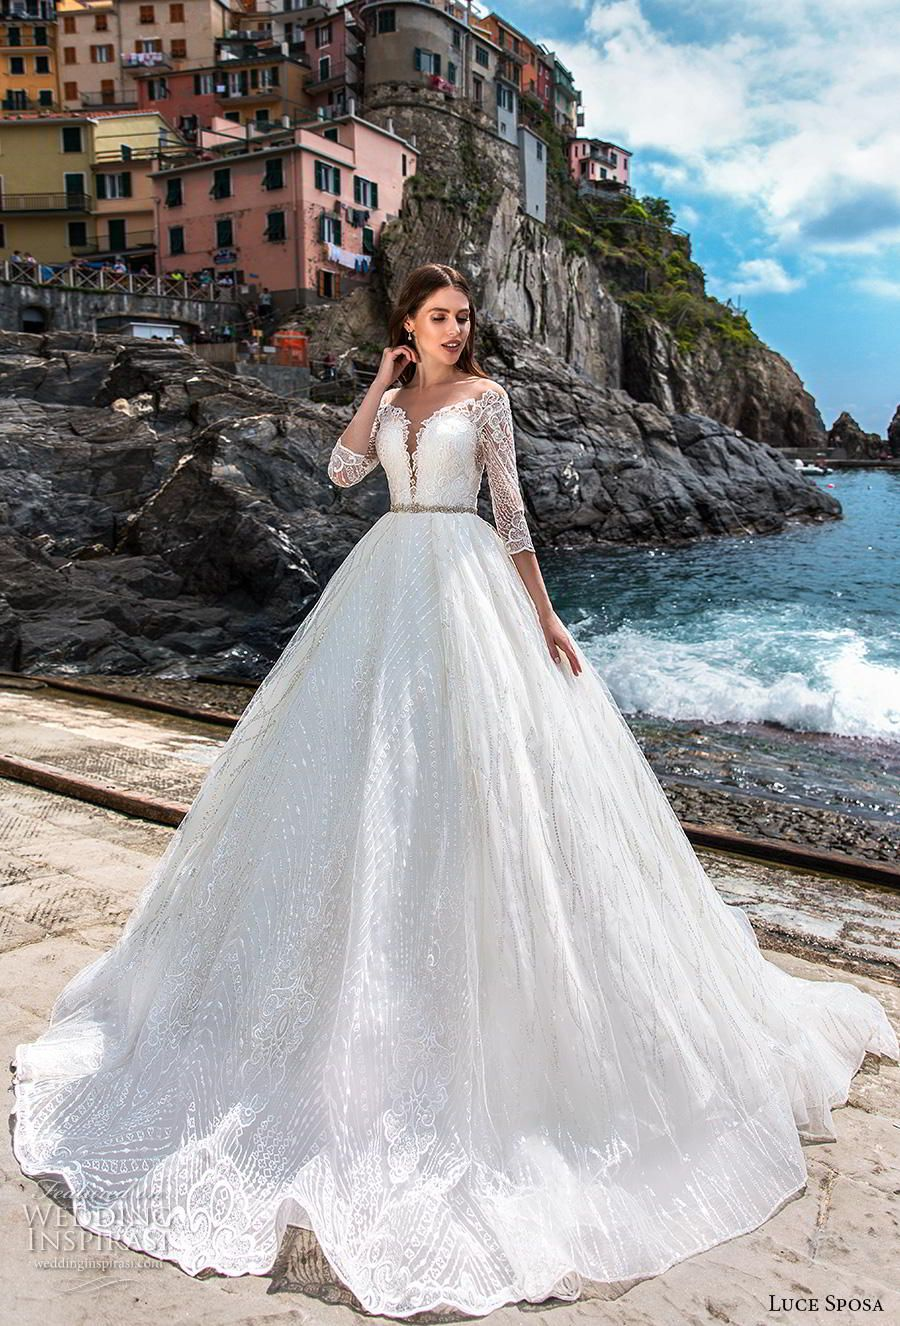 8445e857c9 luce sposa 2019 bridal three quarter sleeves deep plunging sweetheart  neckline full embellishment romantic a line wedding dress lace back chapel  train (10) ...